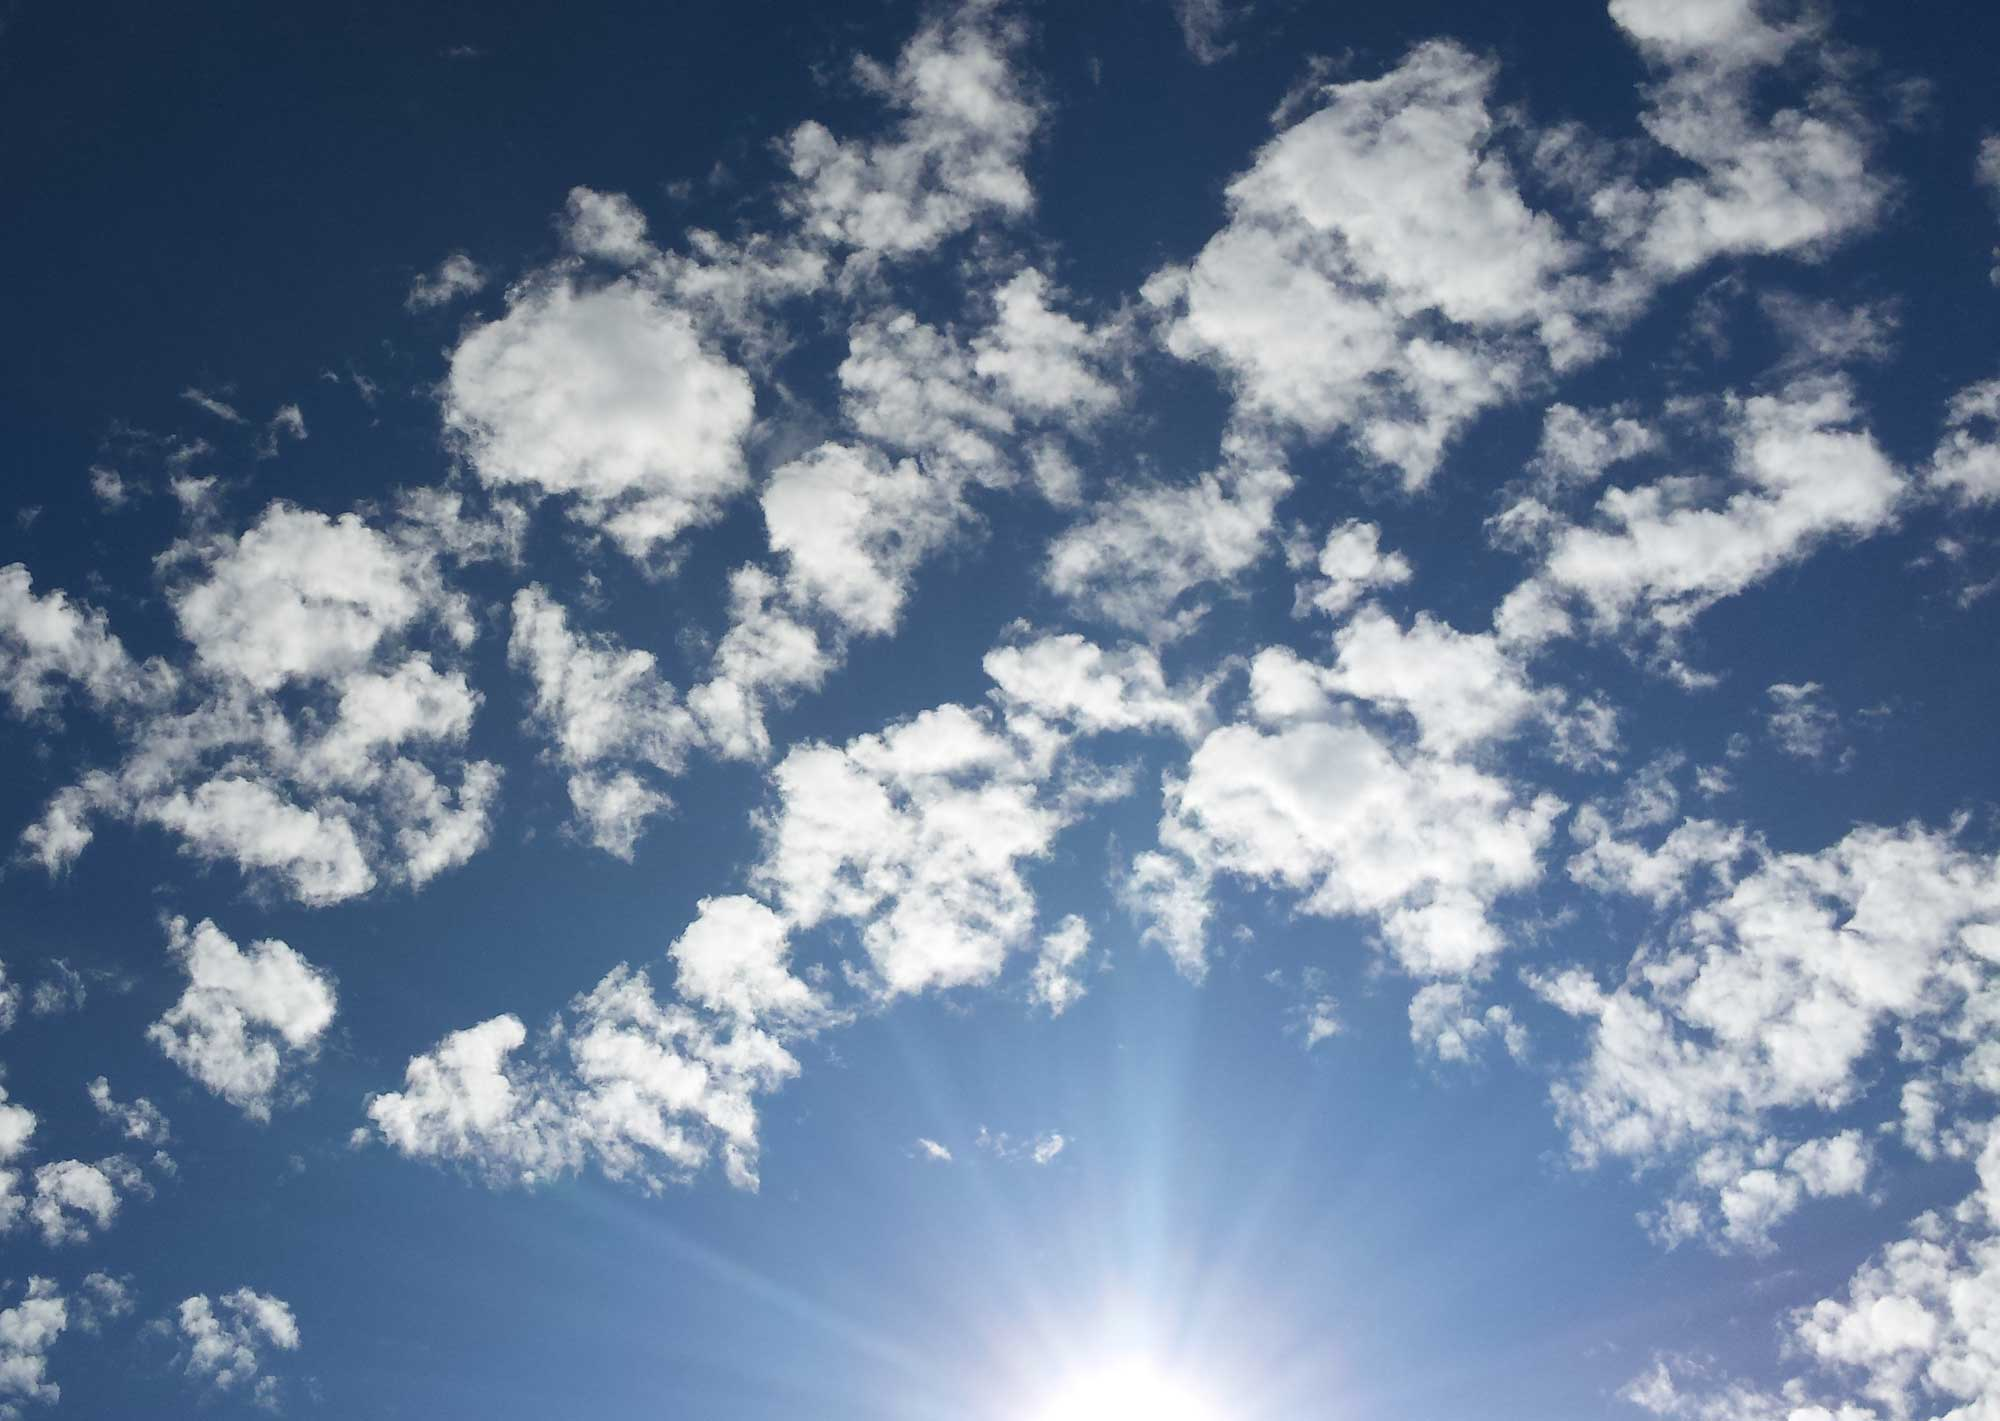 looking up to a blue sky with cotton ball white clouse surrounding the sun